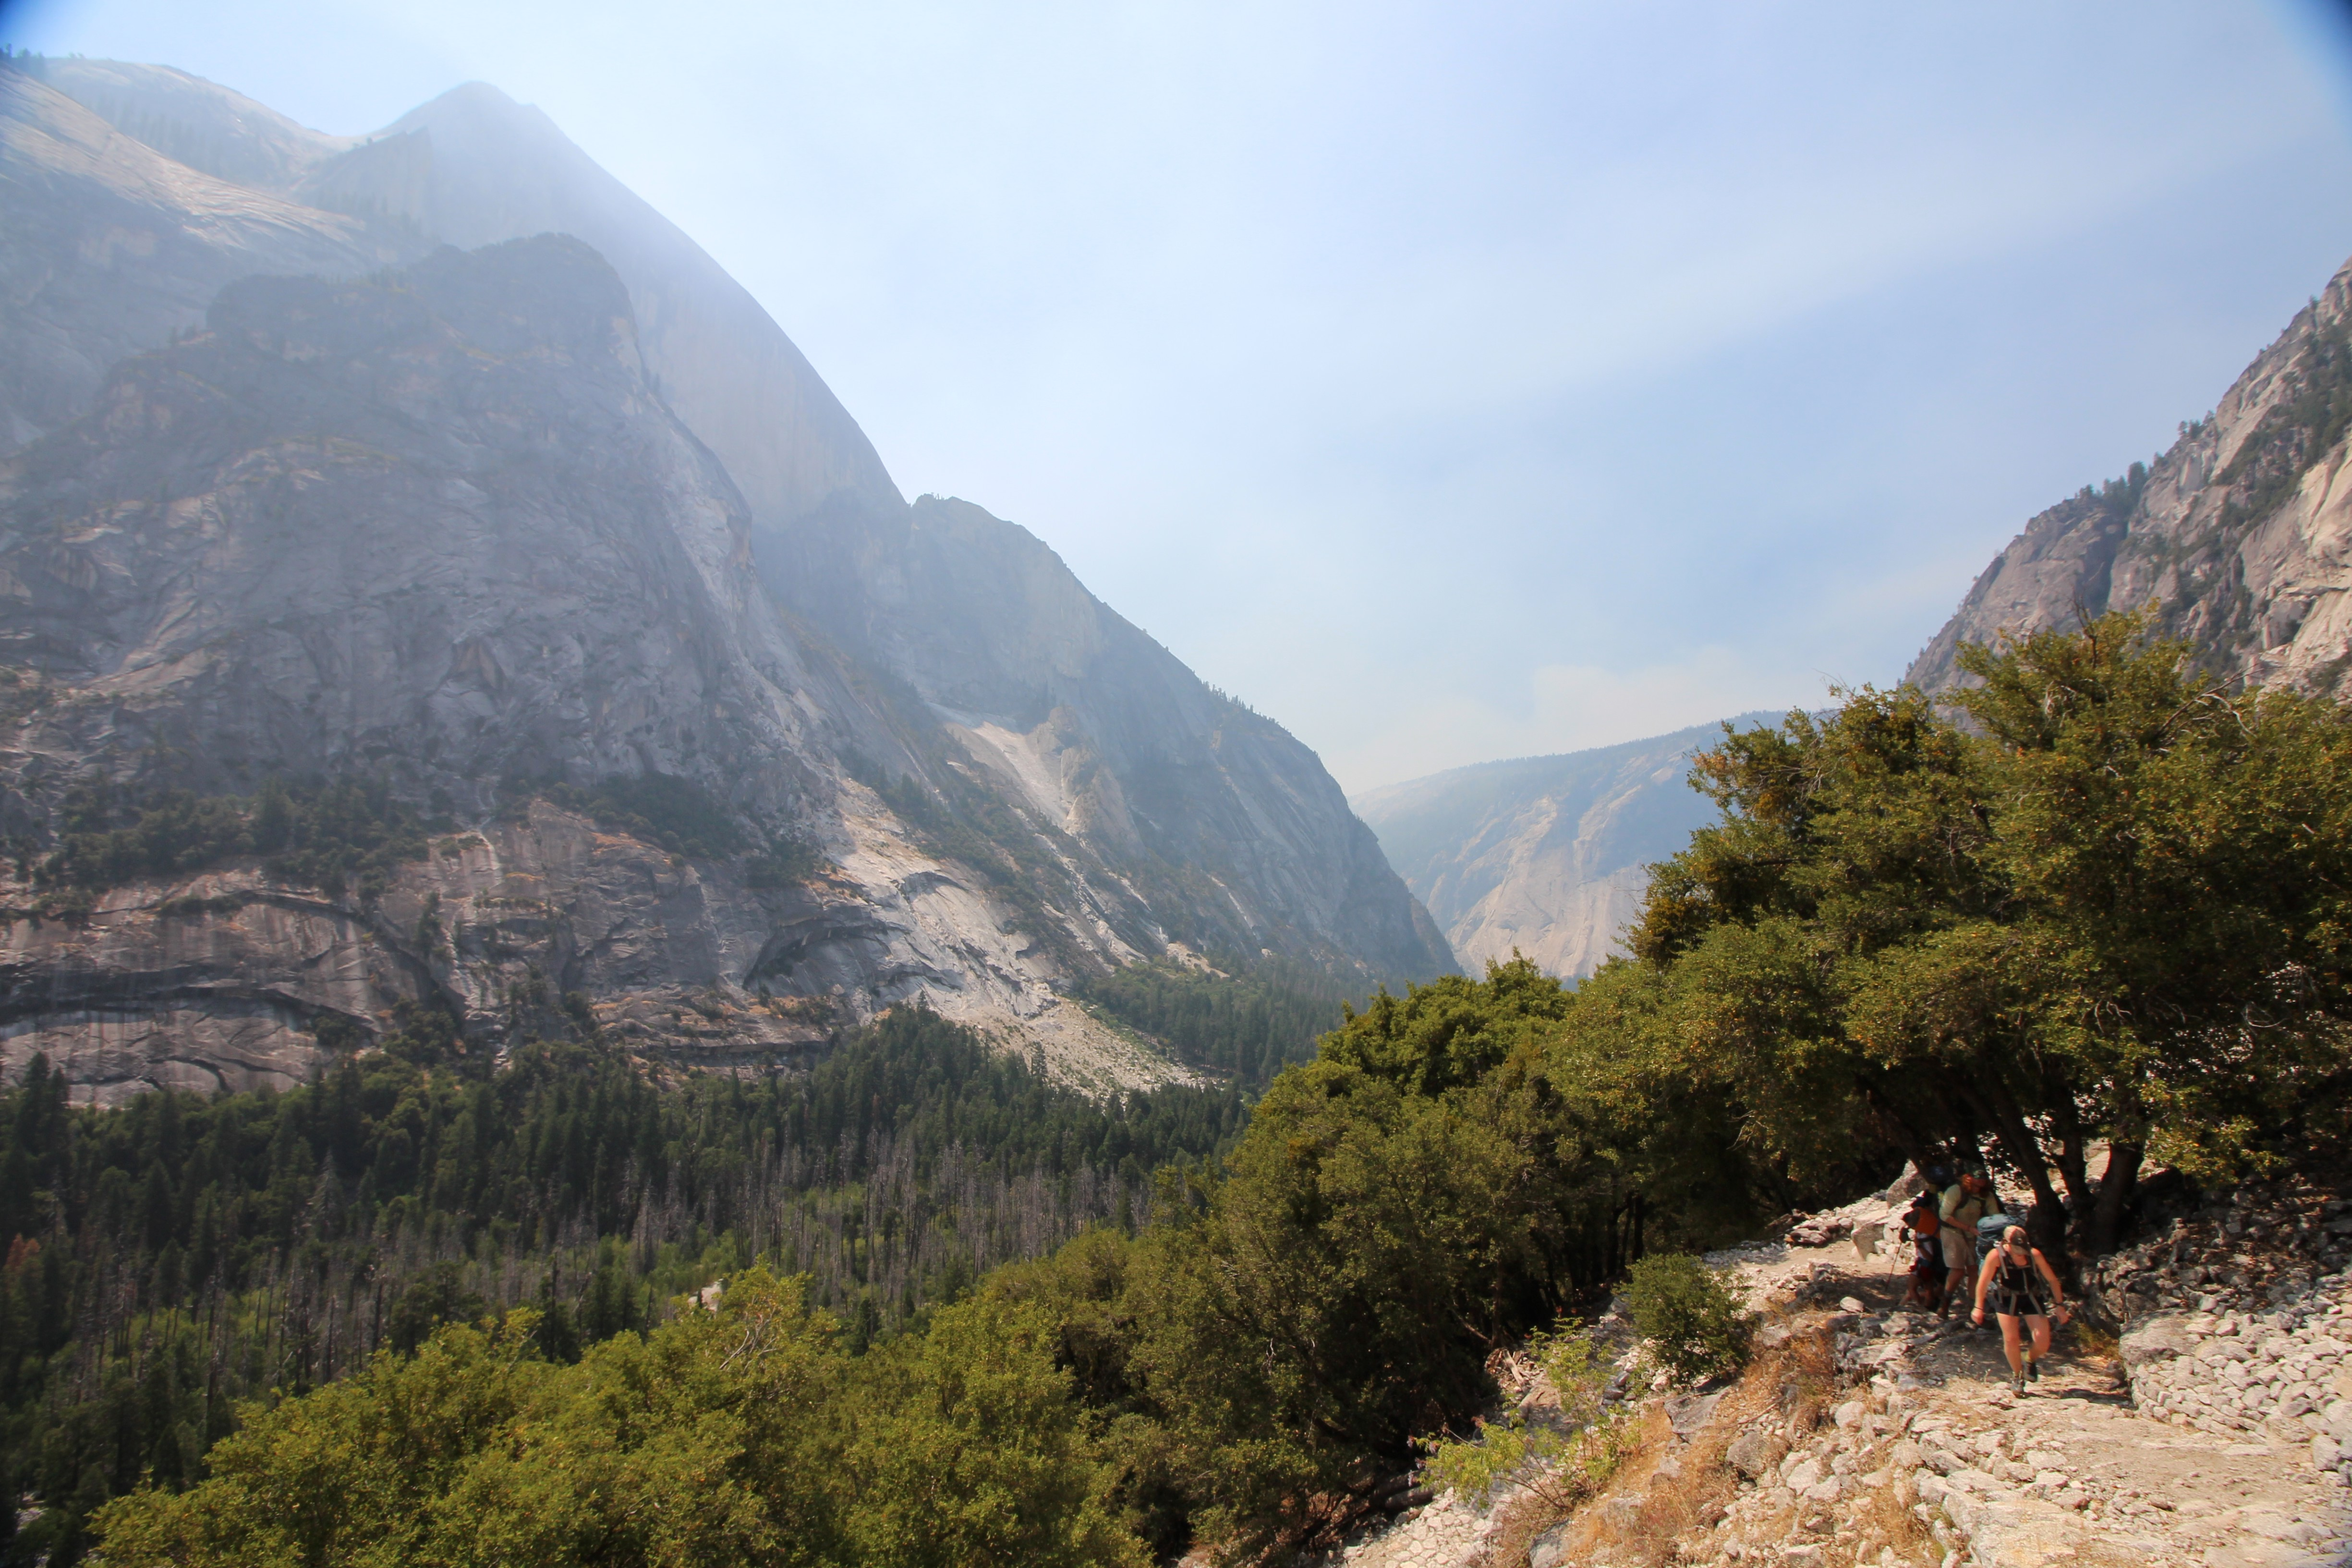 Hiking Out Of The Yosemite Valley Up Snow Creek Falls Trail